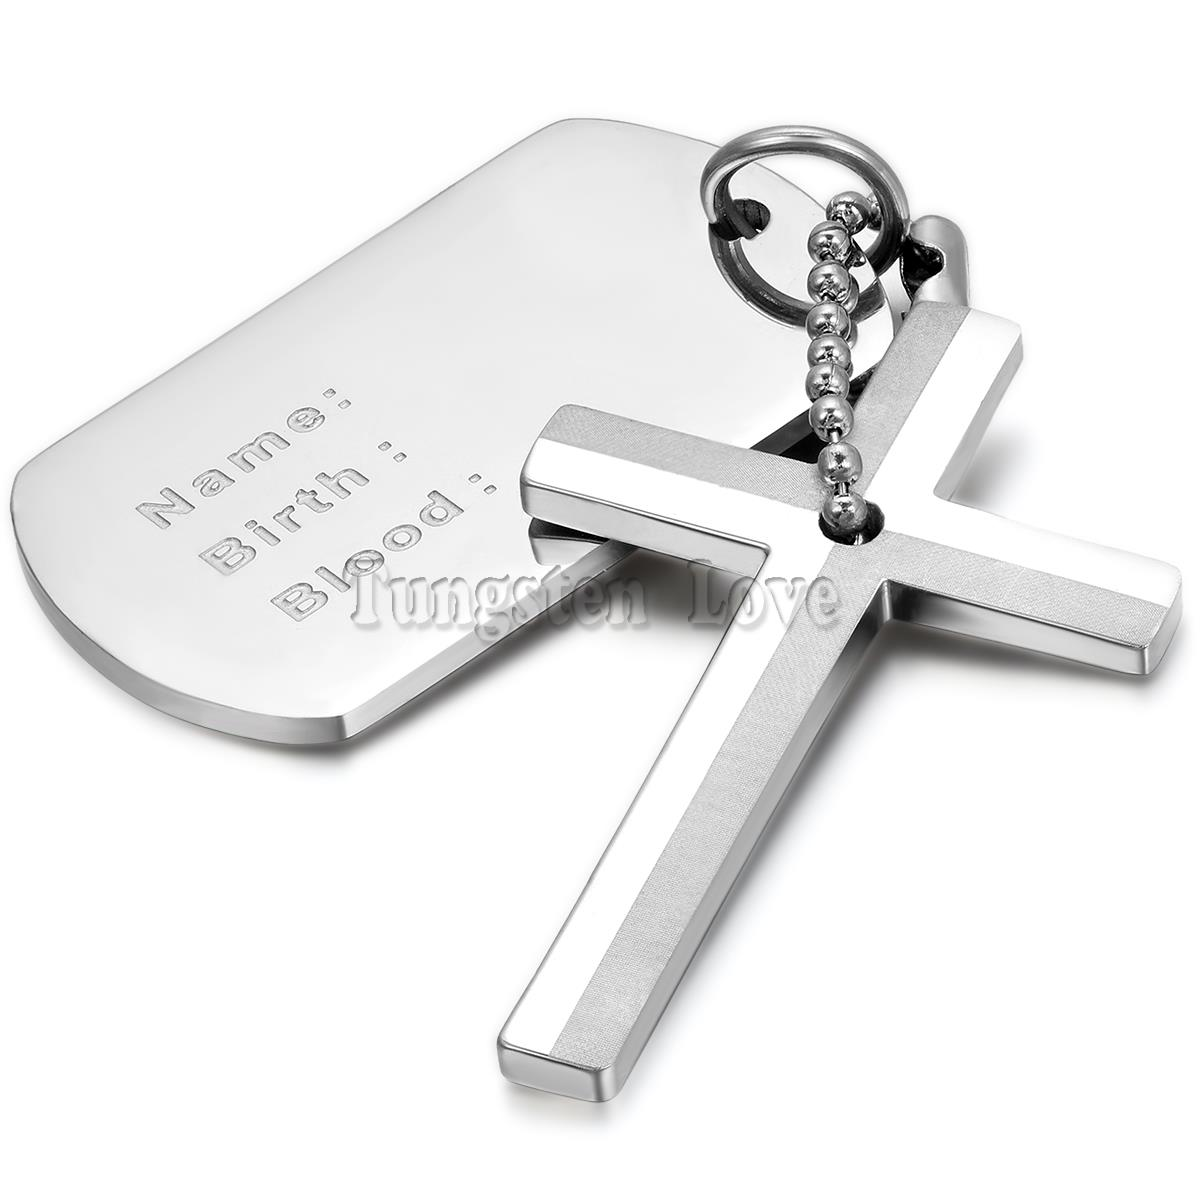 New Stainless Steel Necklaces Men Dog Tag with Cross Pendant Necklace 22 inches Silver Fashion collar masculino(China (Mainland))